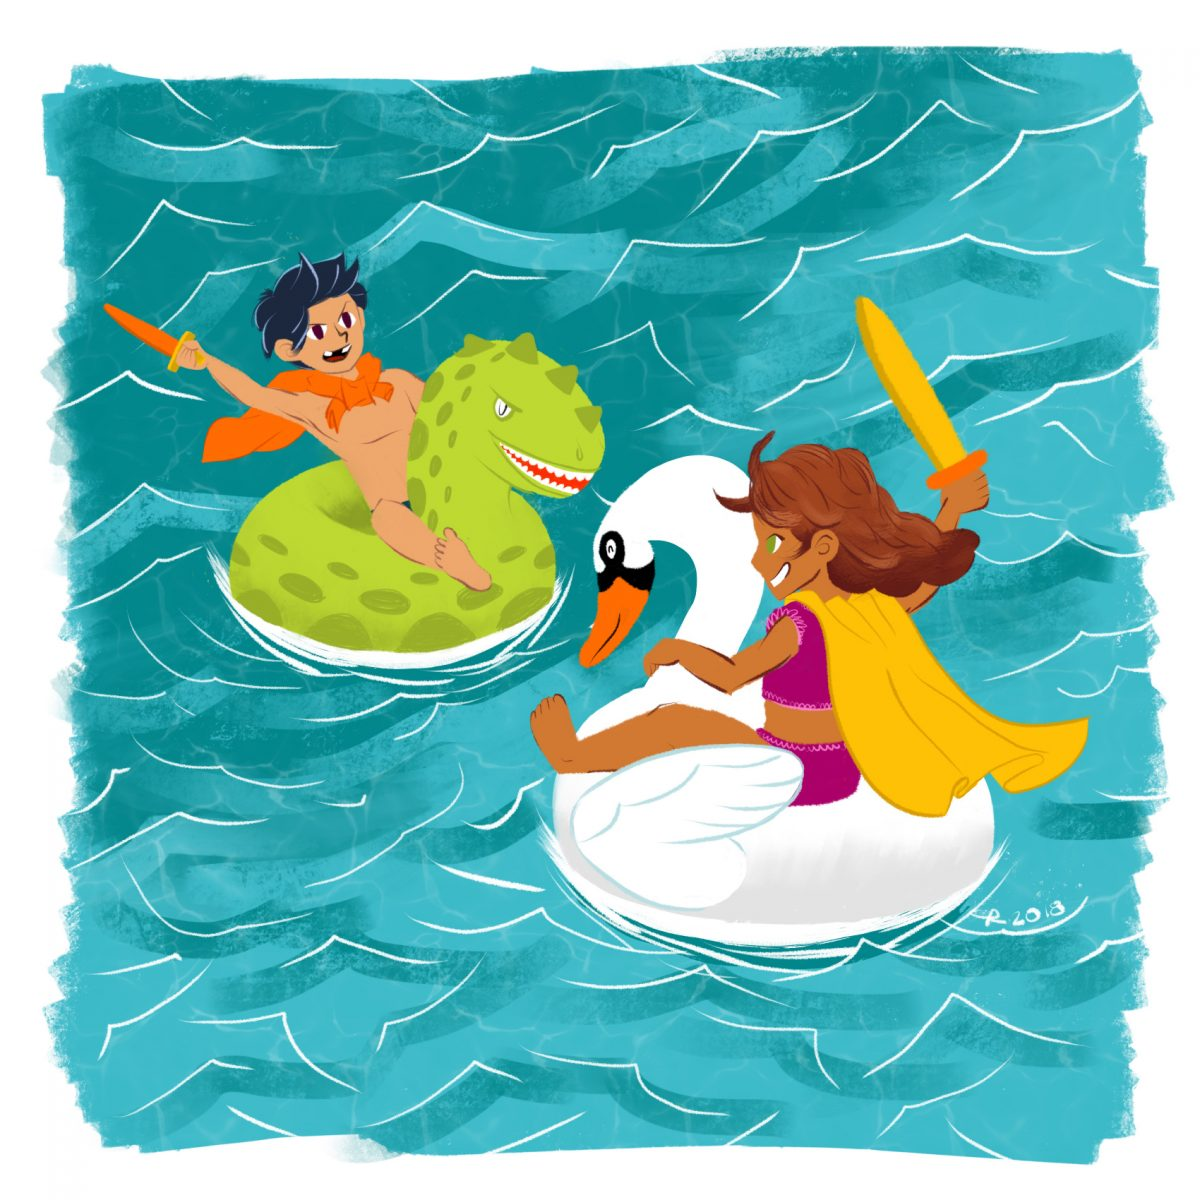 Image of two kids having a sword fight on pool floats